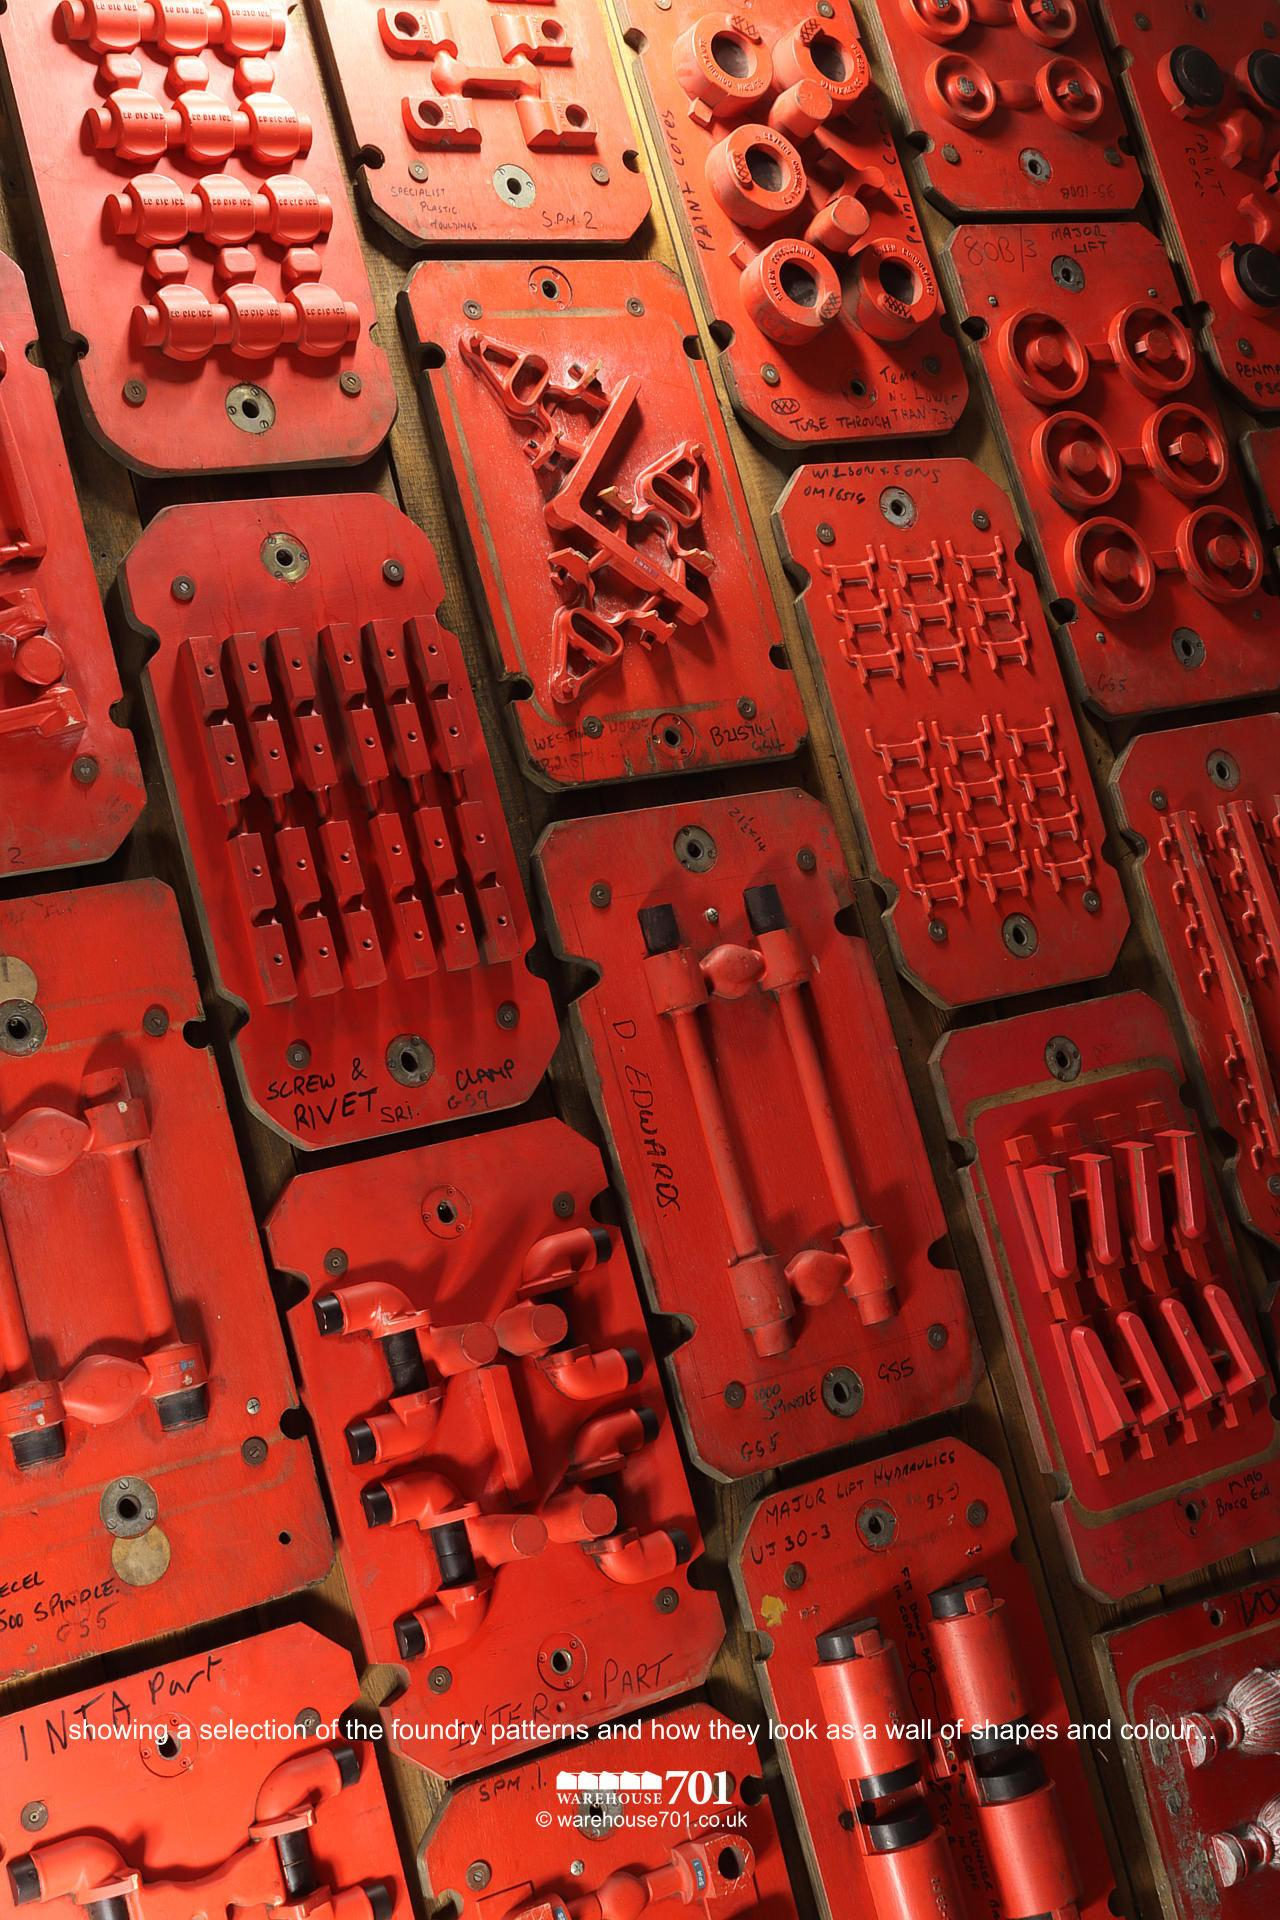 Reclaimed Foundry Patterns or Moulds (No's 4 to 6) for Shop, Retail and Home Display #11